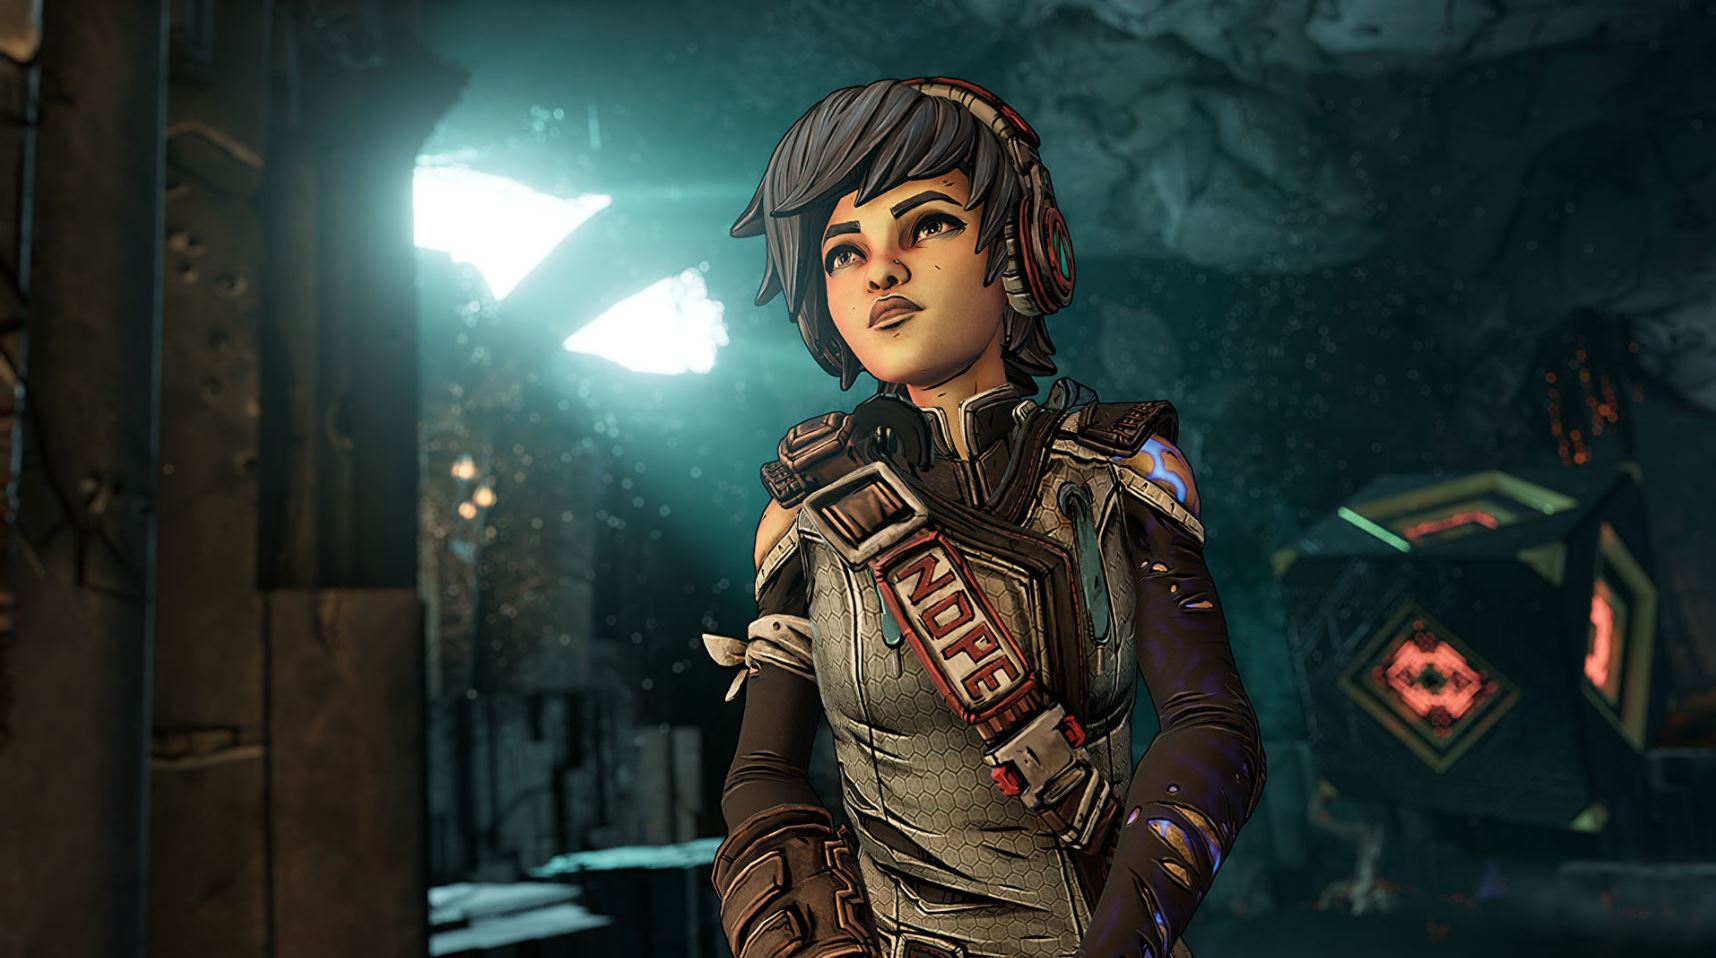 borderlands-3-the-directors-cut-dlc-delayed-on-ps5-and-ps4-to-april-8-2021